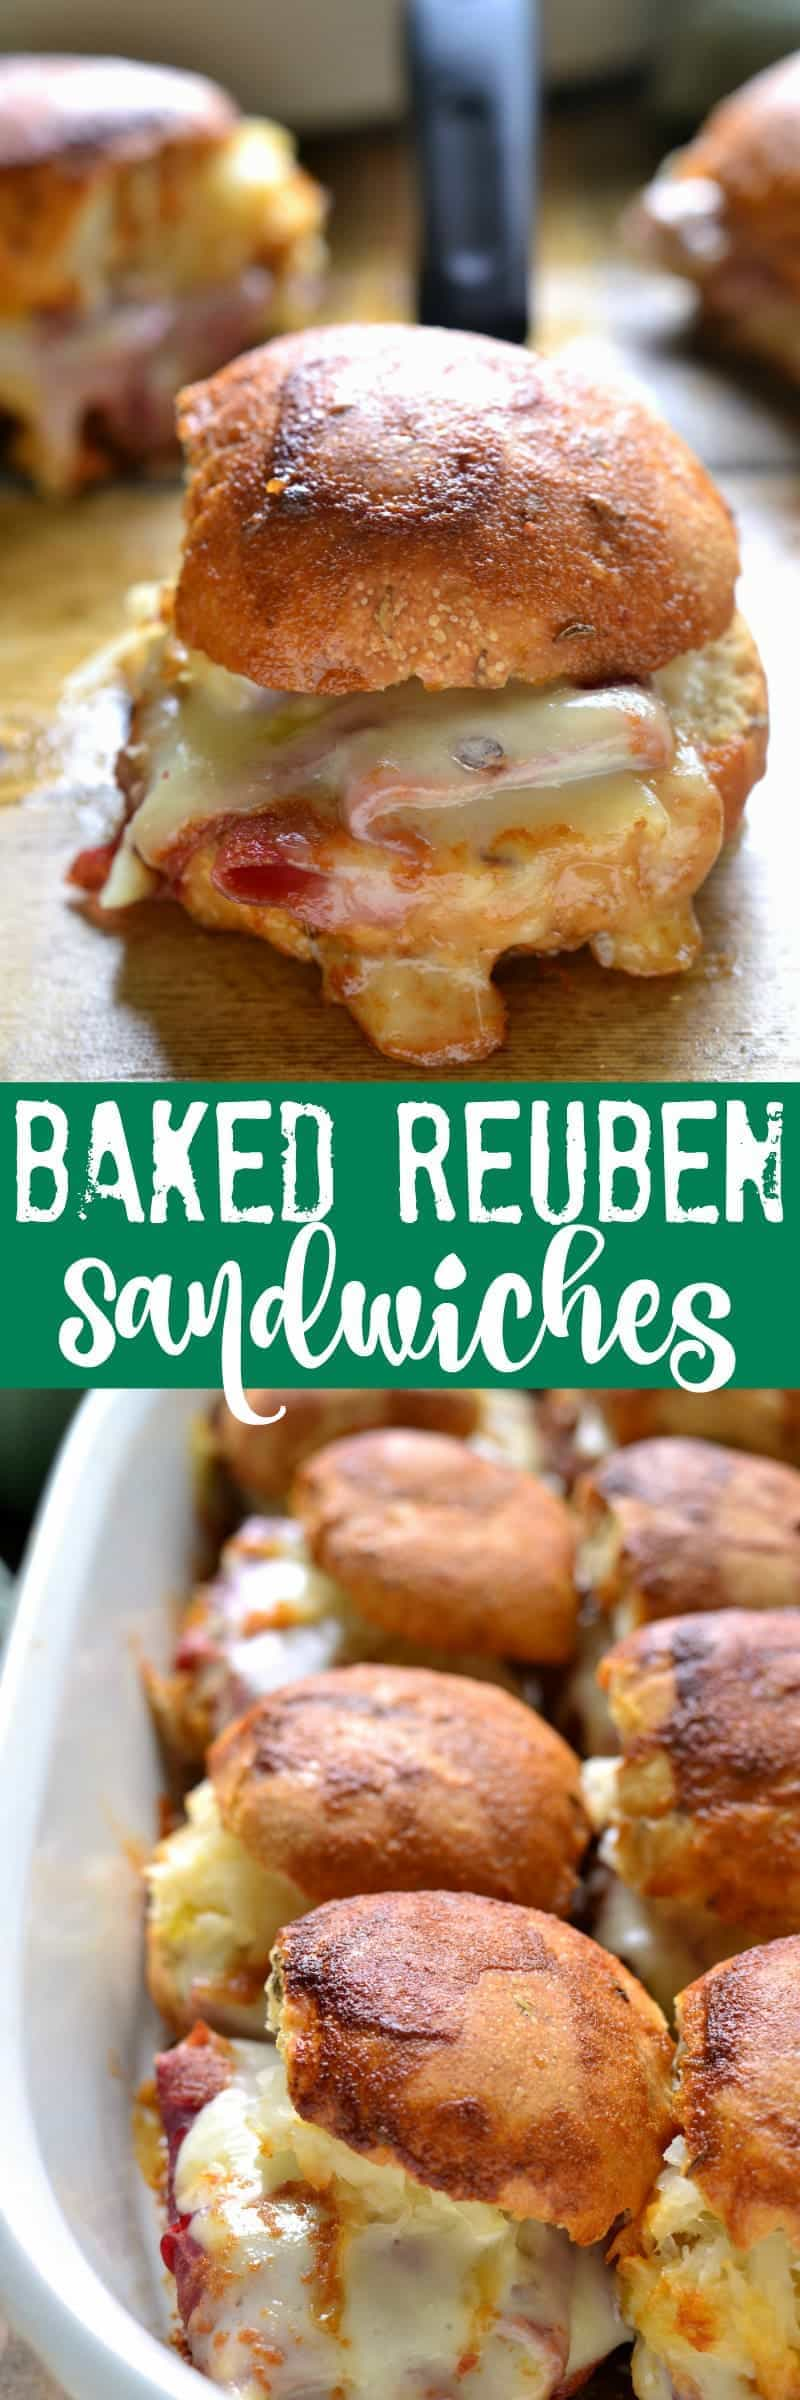 These Baked Reuben Sandwiches combine all the flavors of a classic Reuben with a delicious sauce that's baked right in! Perfect for St. Patrick's Day or all year round, and great for feeding a crowd!